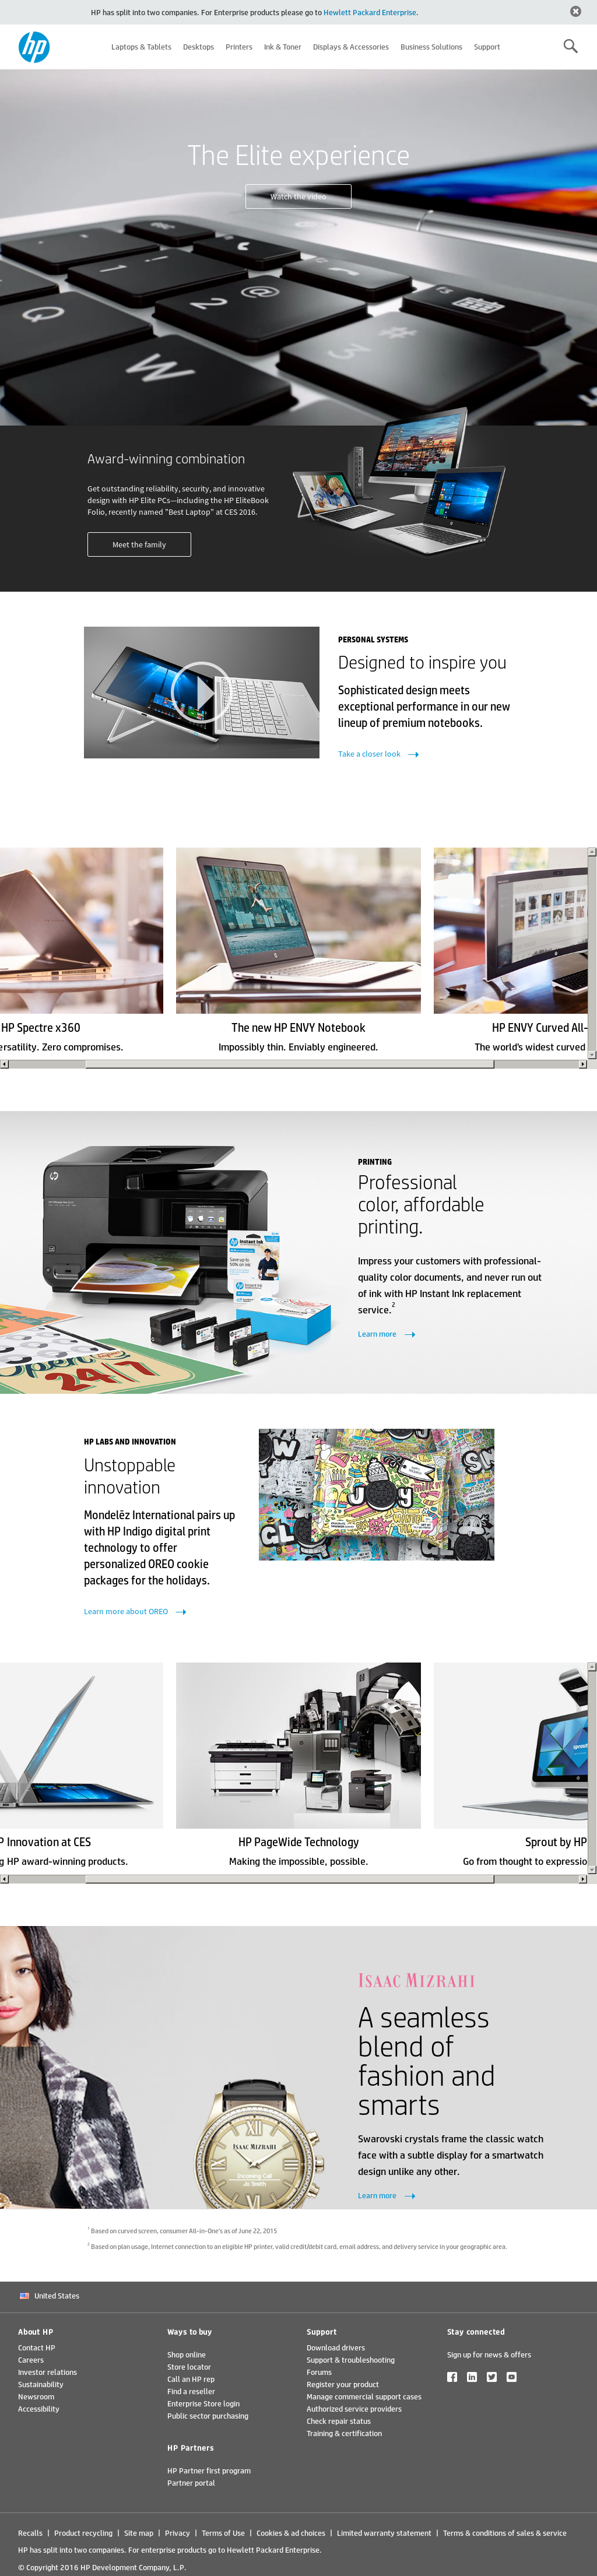 the history of the reorganization of the hp company Research or buy hp printers, desktops, laptops, servers, storage, enterprise solutions and more at the official hewlett-packard website.